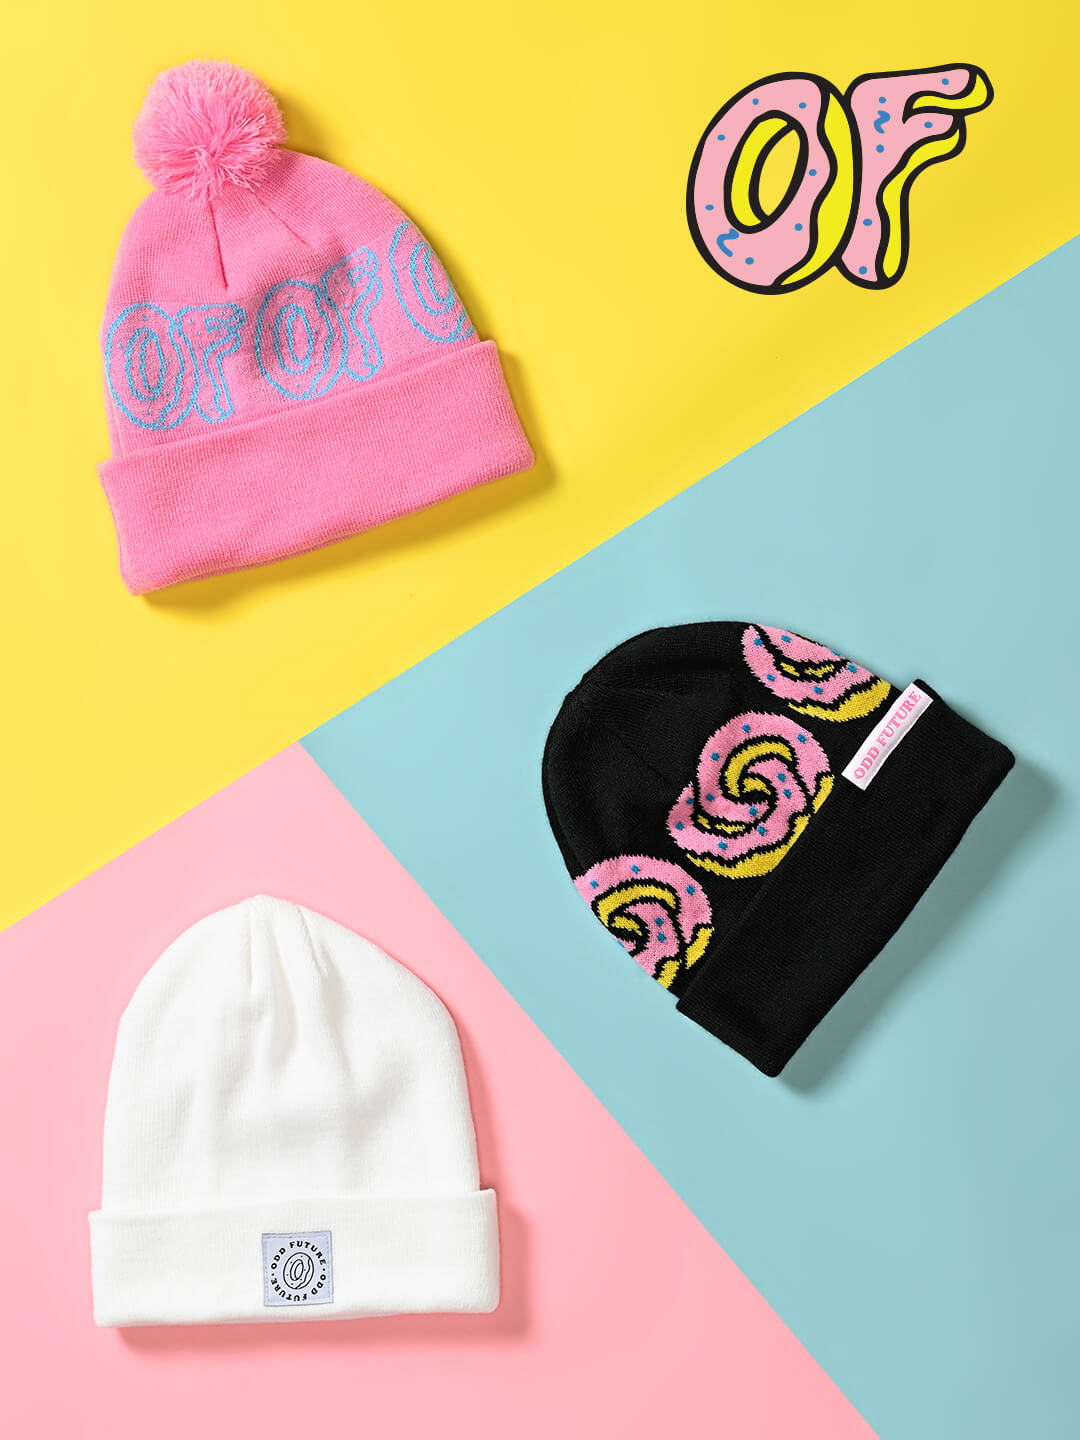 NEW BEANIES FROM ODD FUTURE &MORE-SHOP BEANIES